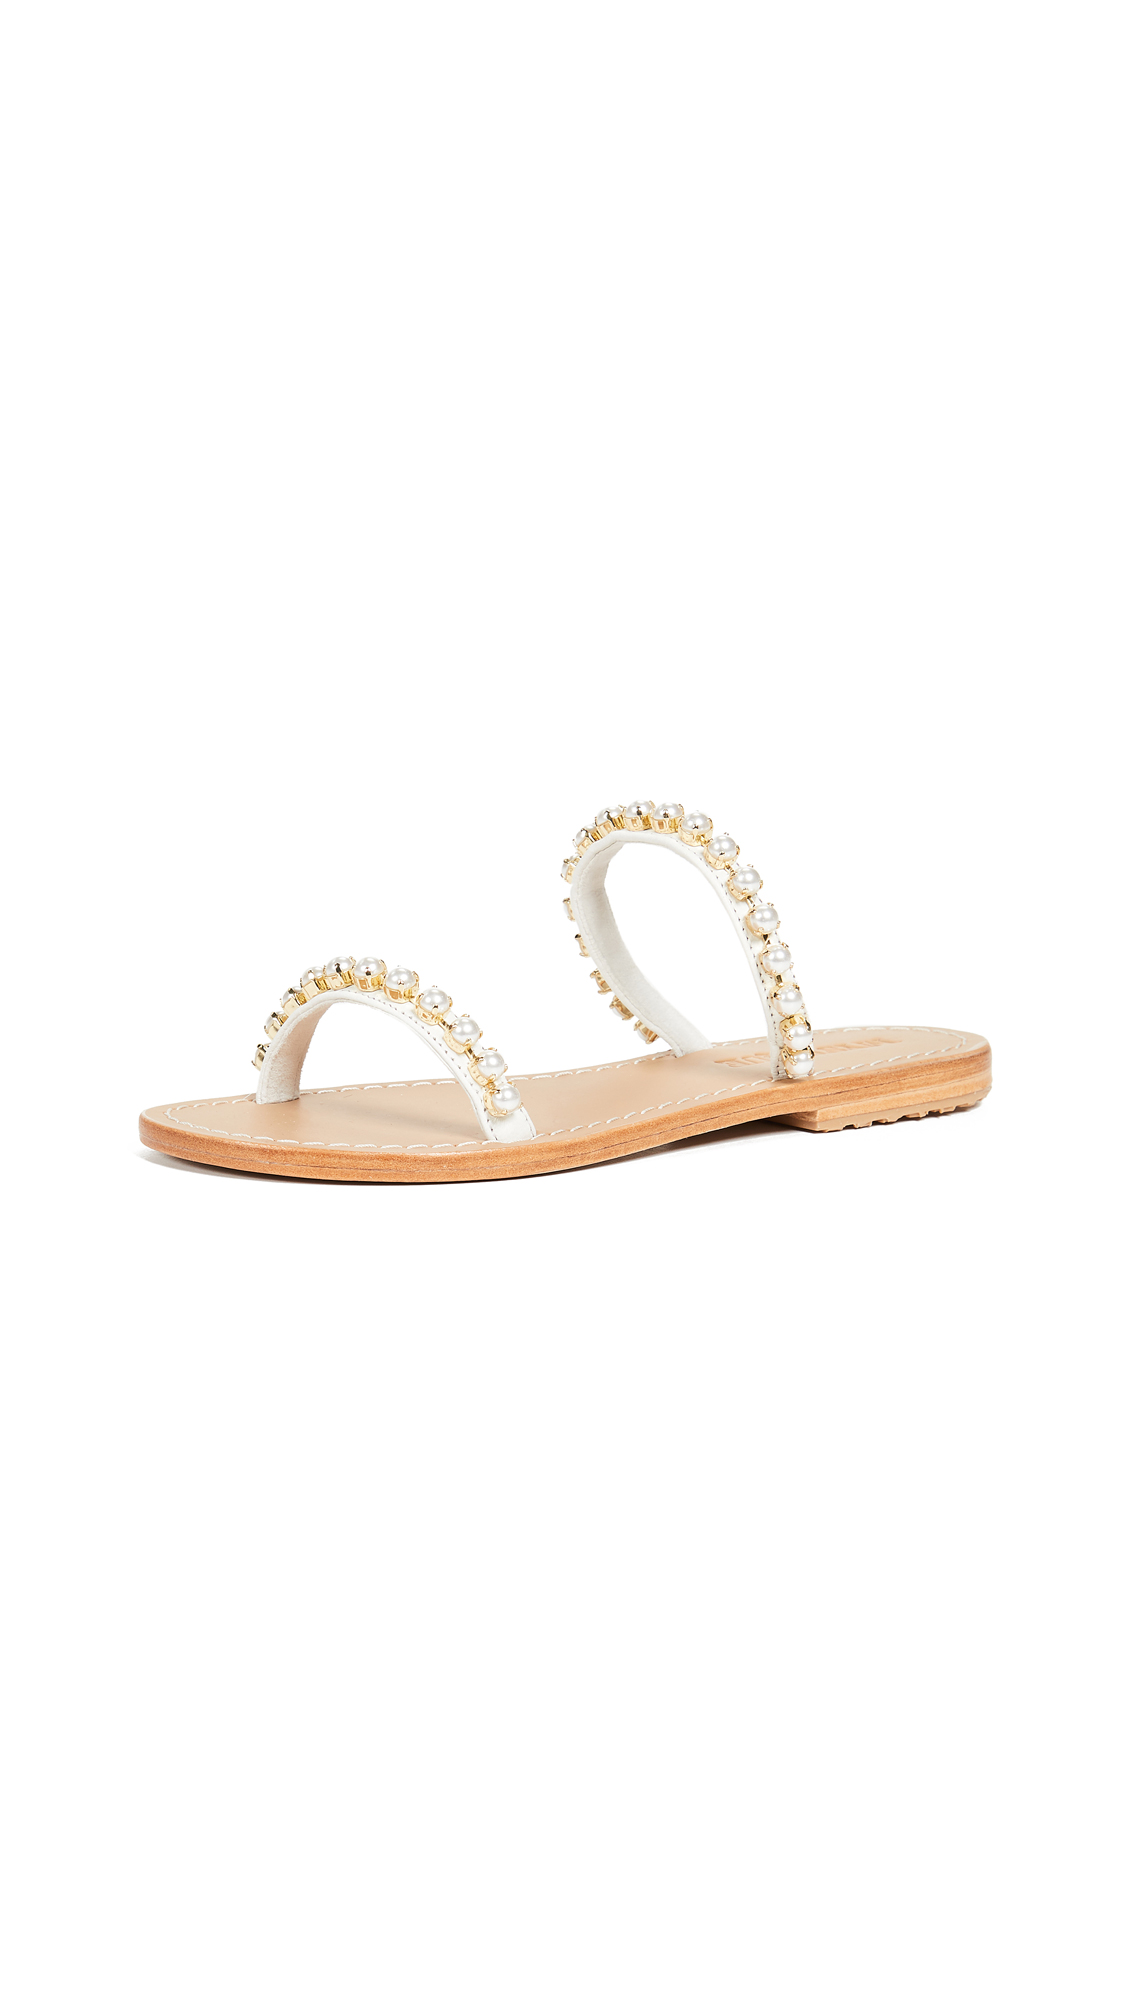 Mystique Pearl Two Strap Sandal